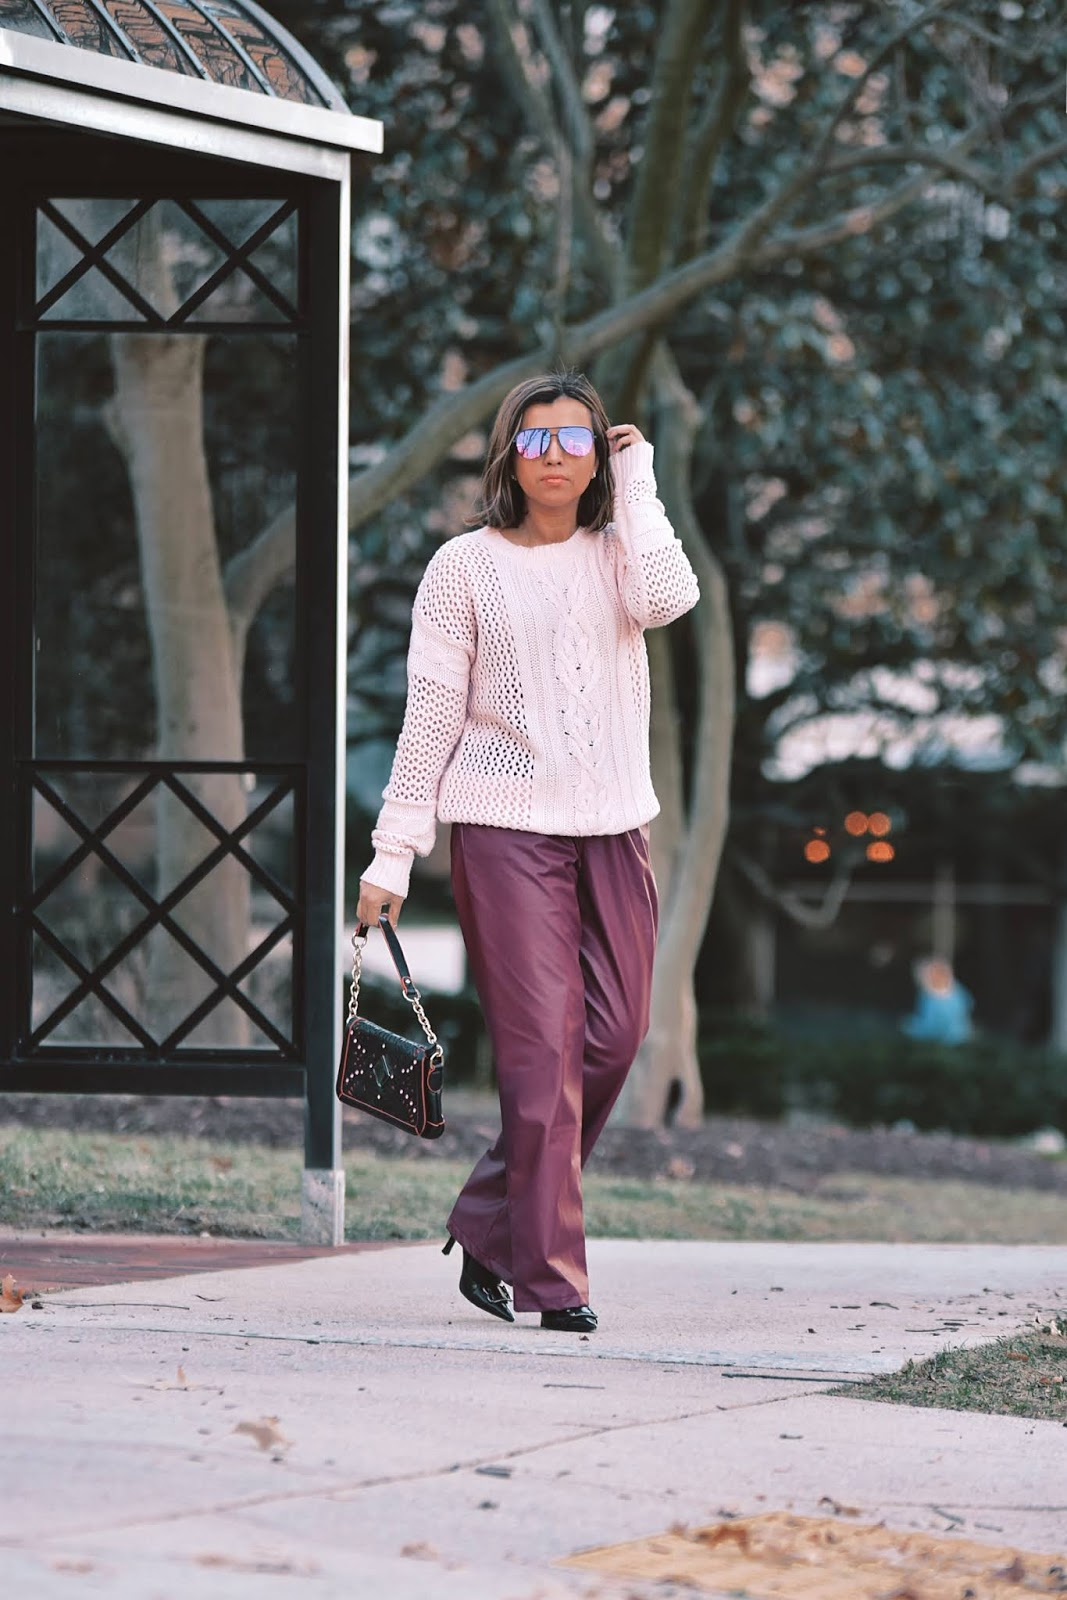 Outfit Combinando Los Colores Rosa y Vino-dcblogger-streetstyle-pantone-color of the winter-winterstyle-fake leather pants-sheingals-modaelsalvador-